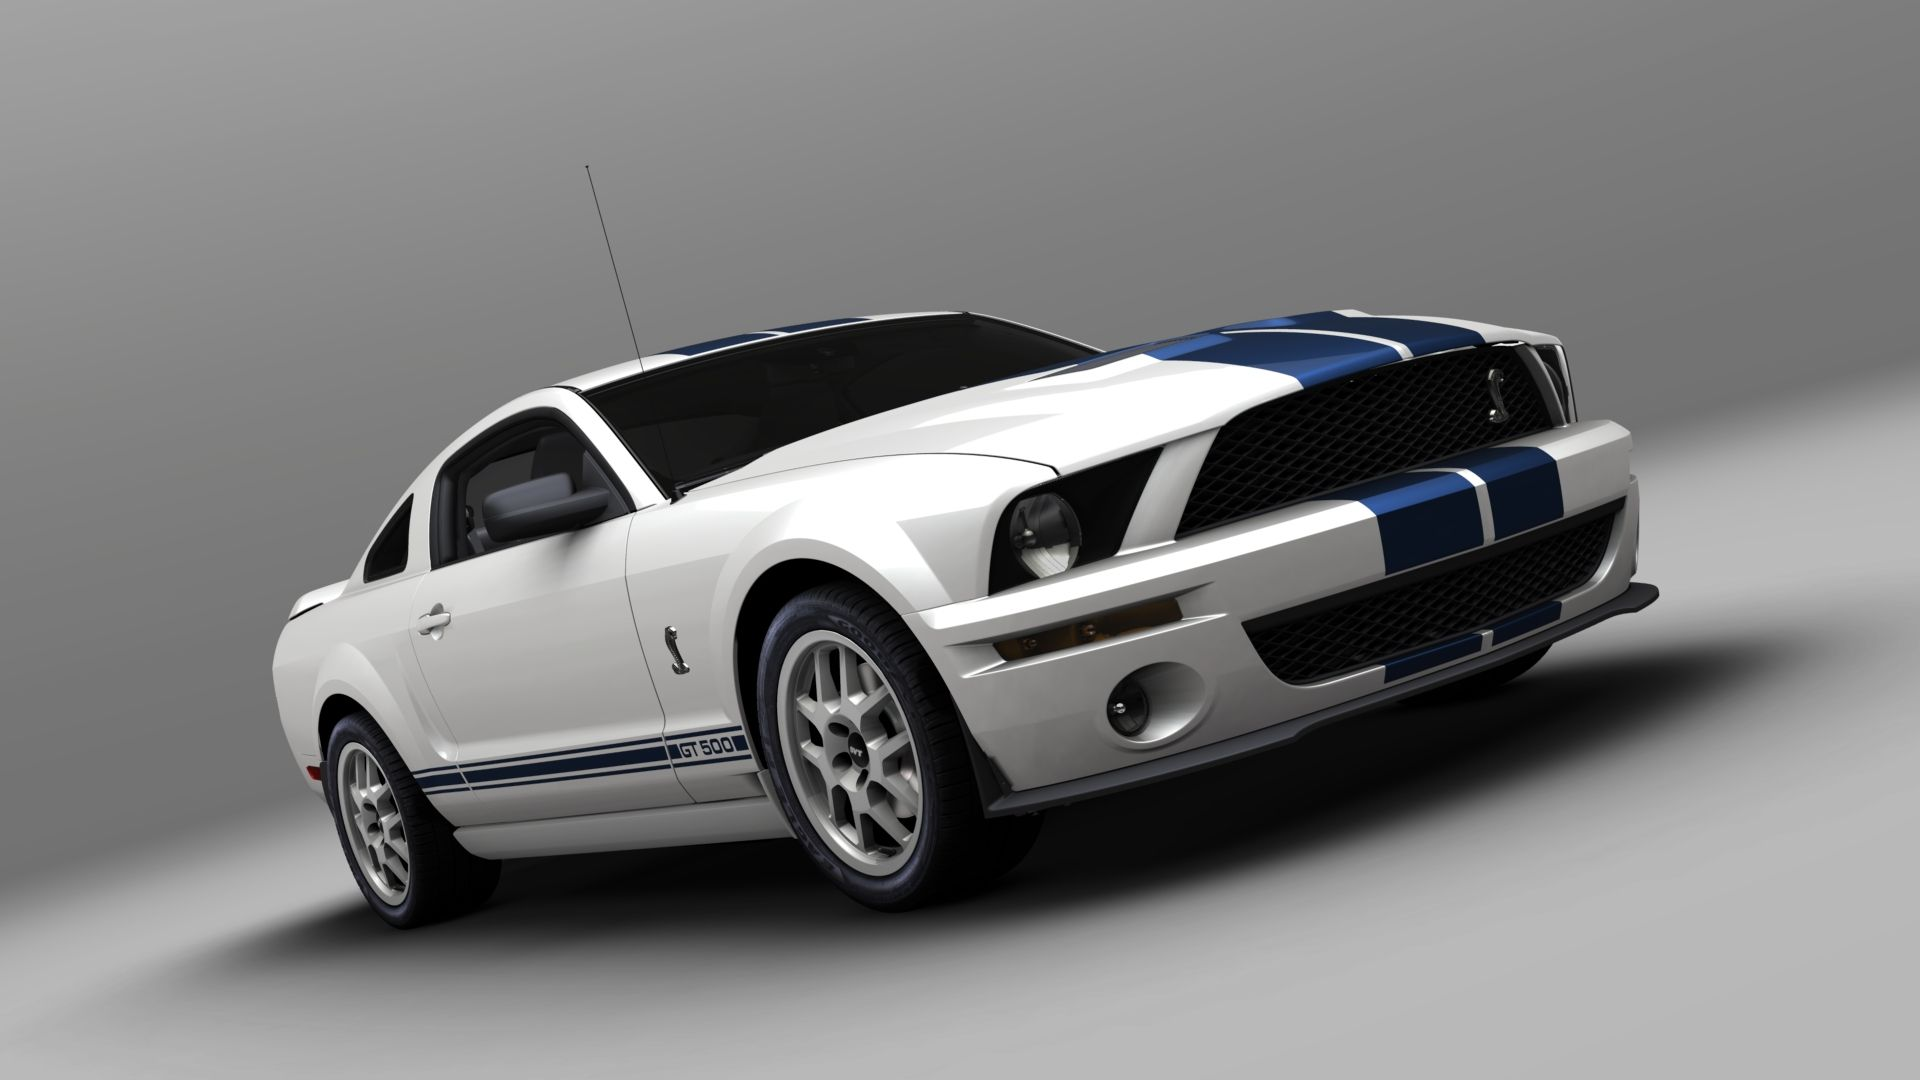 2012 Ford Mustang Gt Background Wallpaper Hd Car Wallpaper Ford Mustang Shelby Cobra Mustang Shelby Ford Mustang Shelby